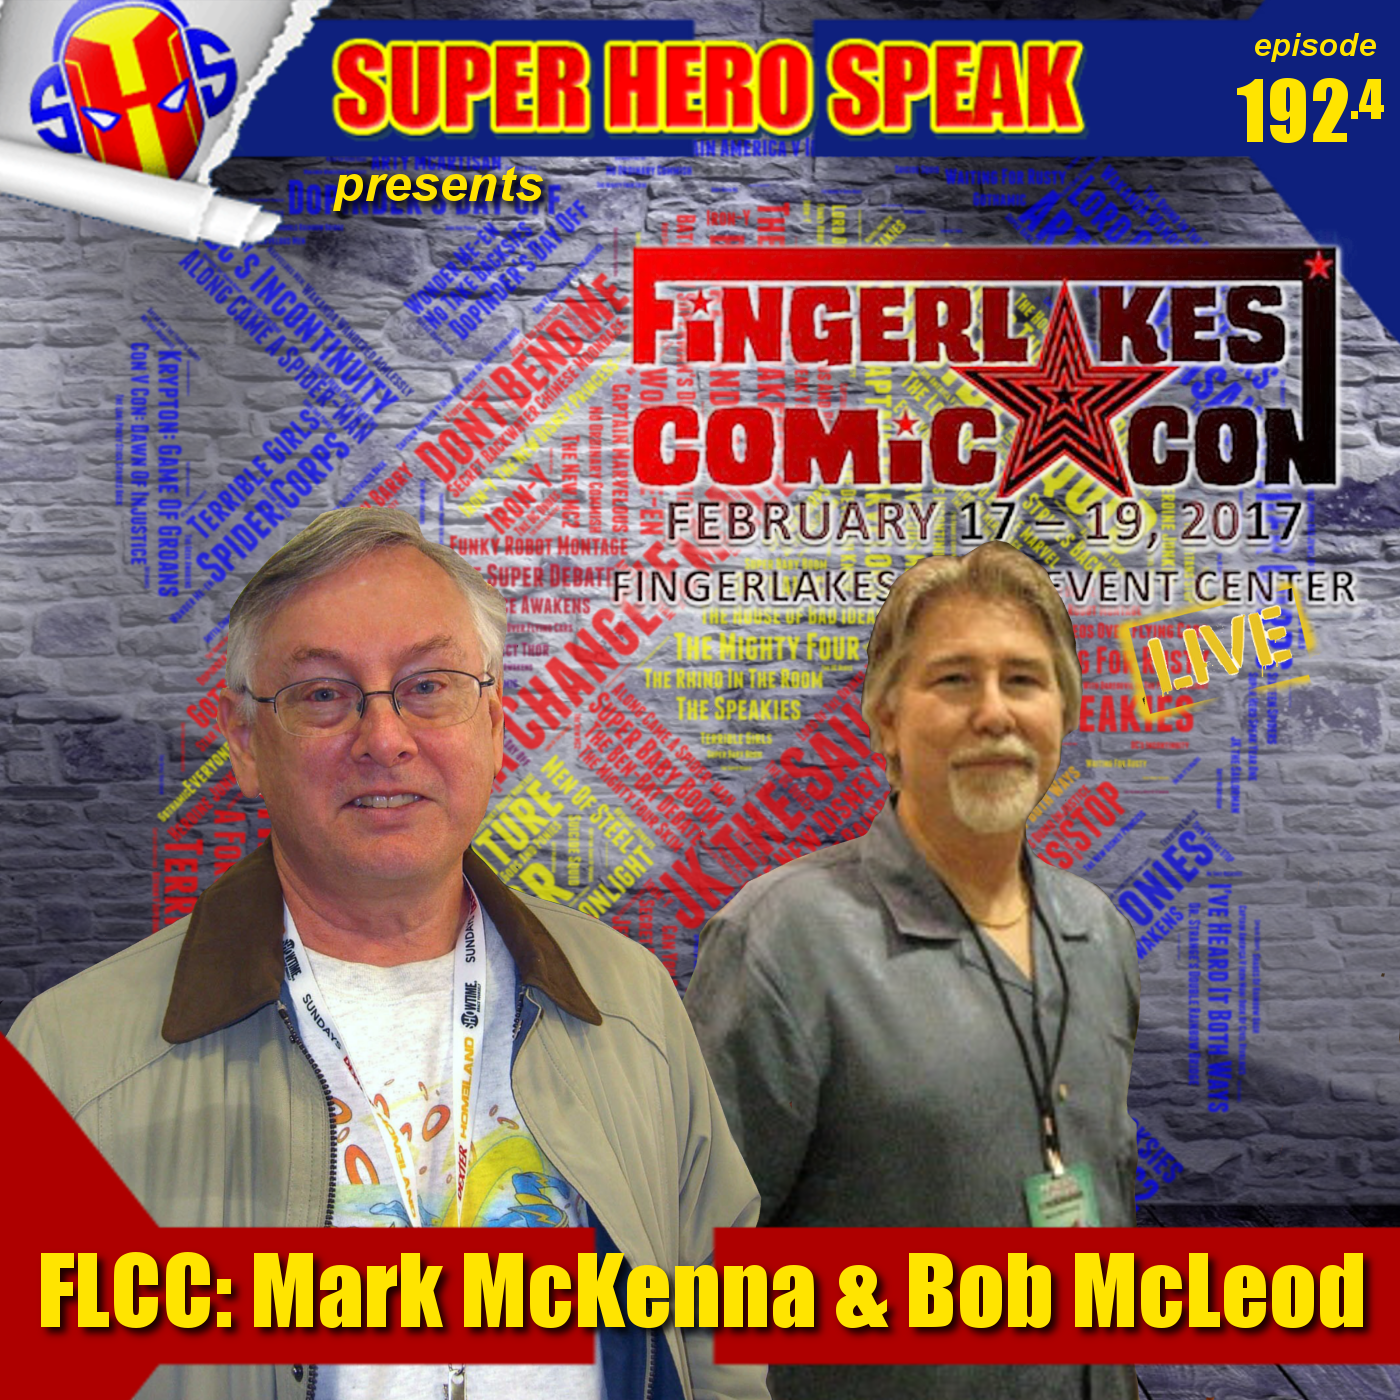 #192.4: FLCC Mark McKenna and Bob McLeod